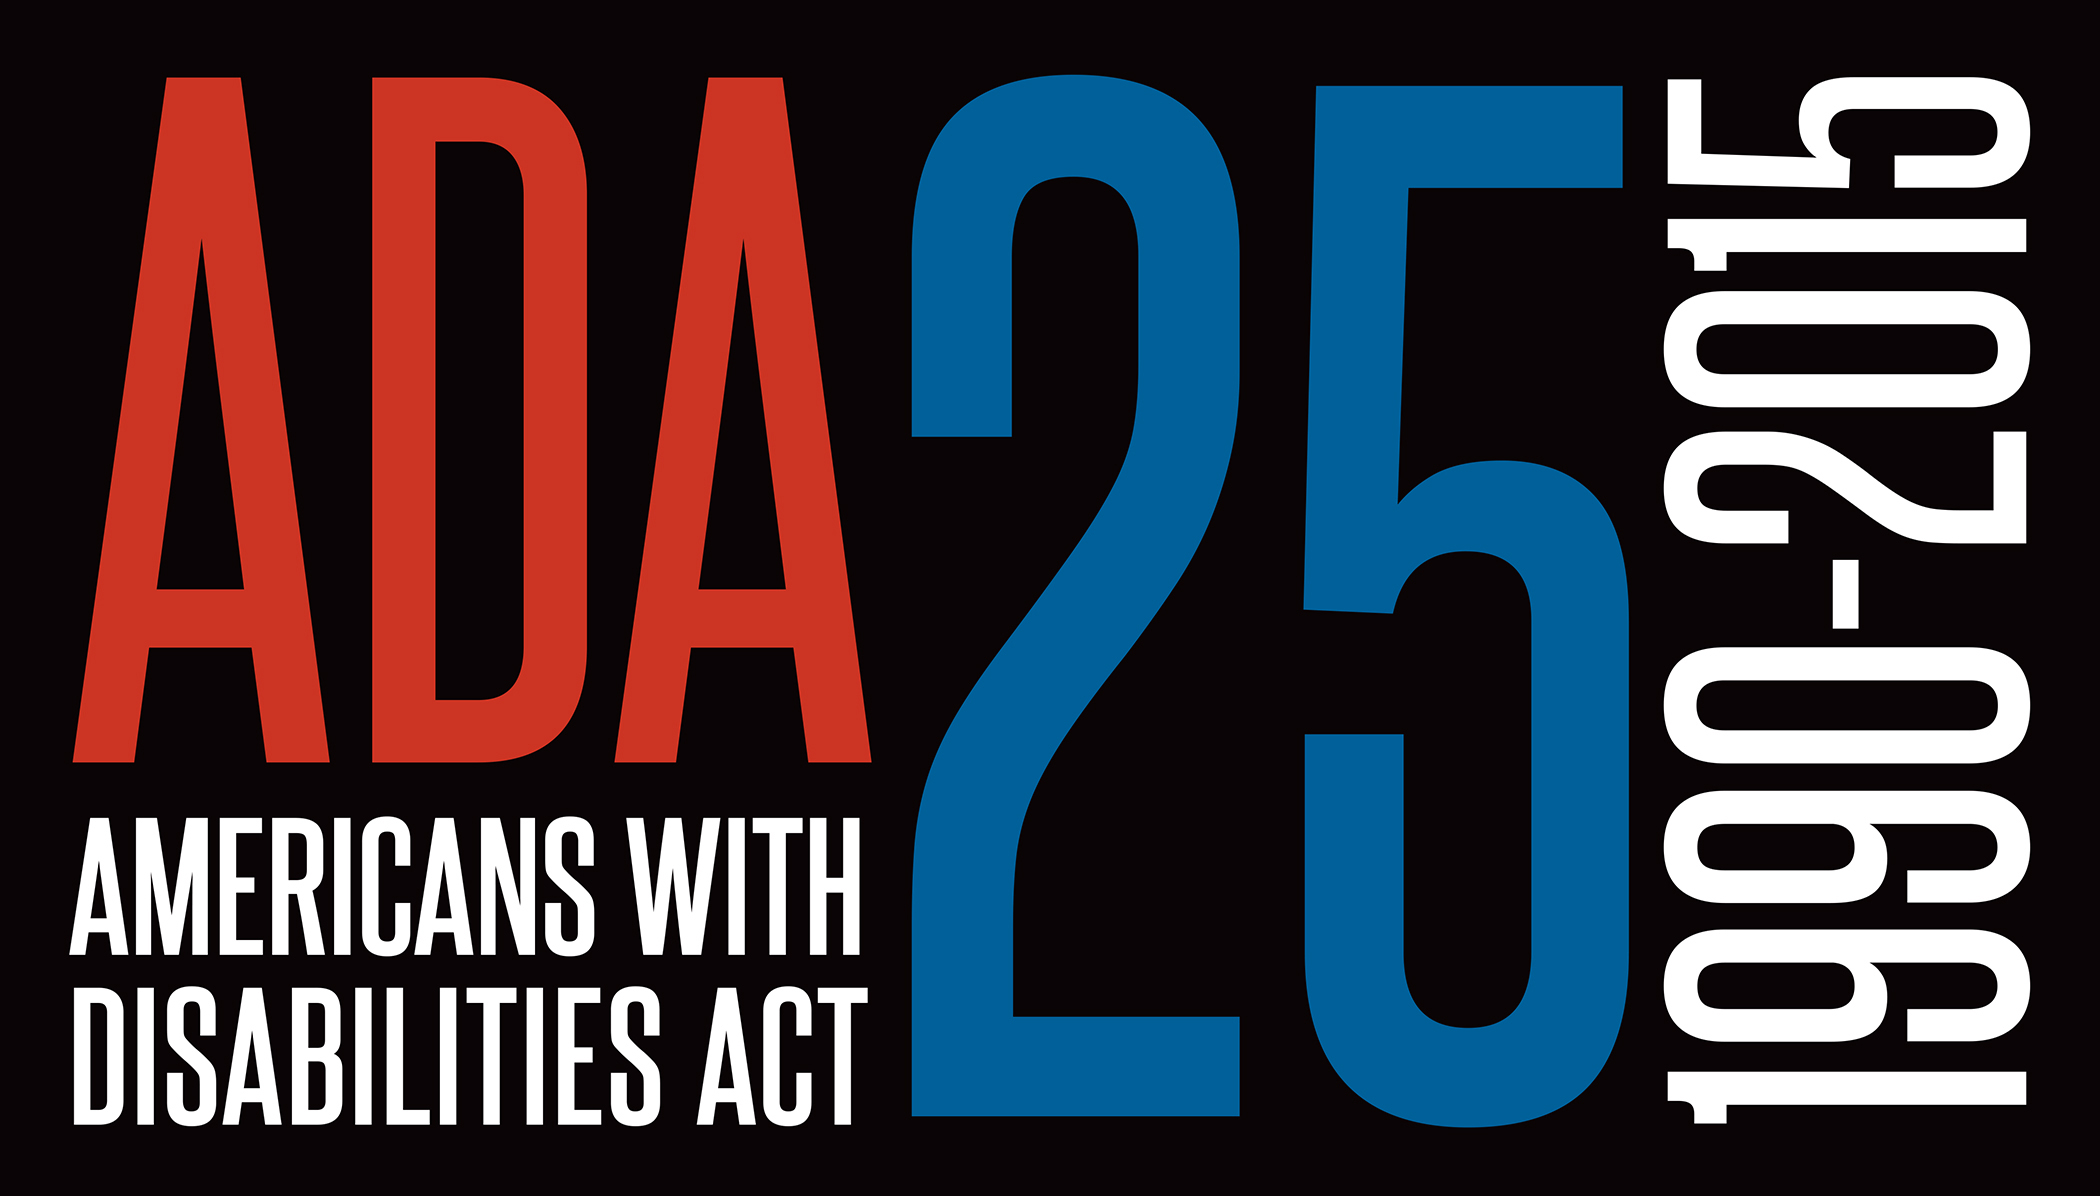 ADA 25 Years Graphic courtesy of the ADA Legacy Project